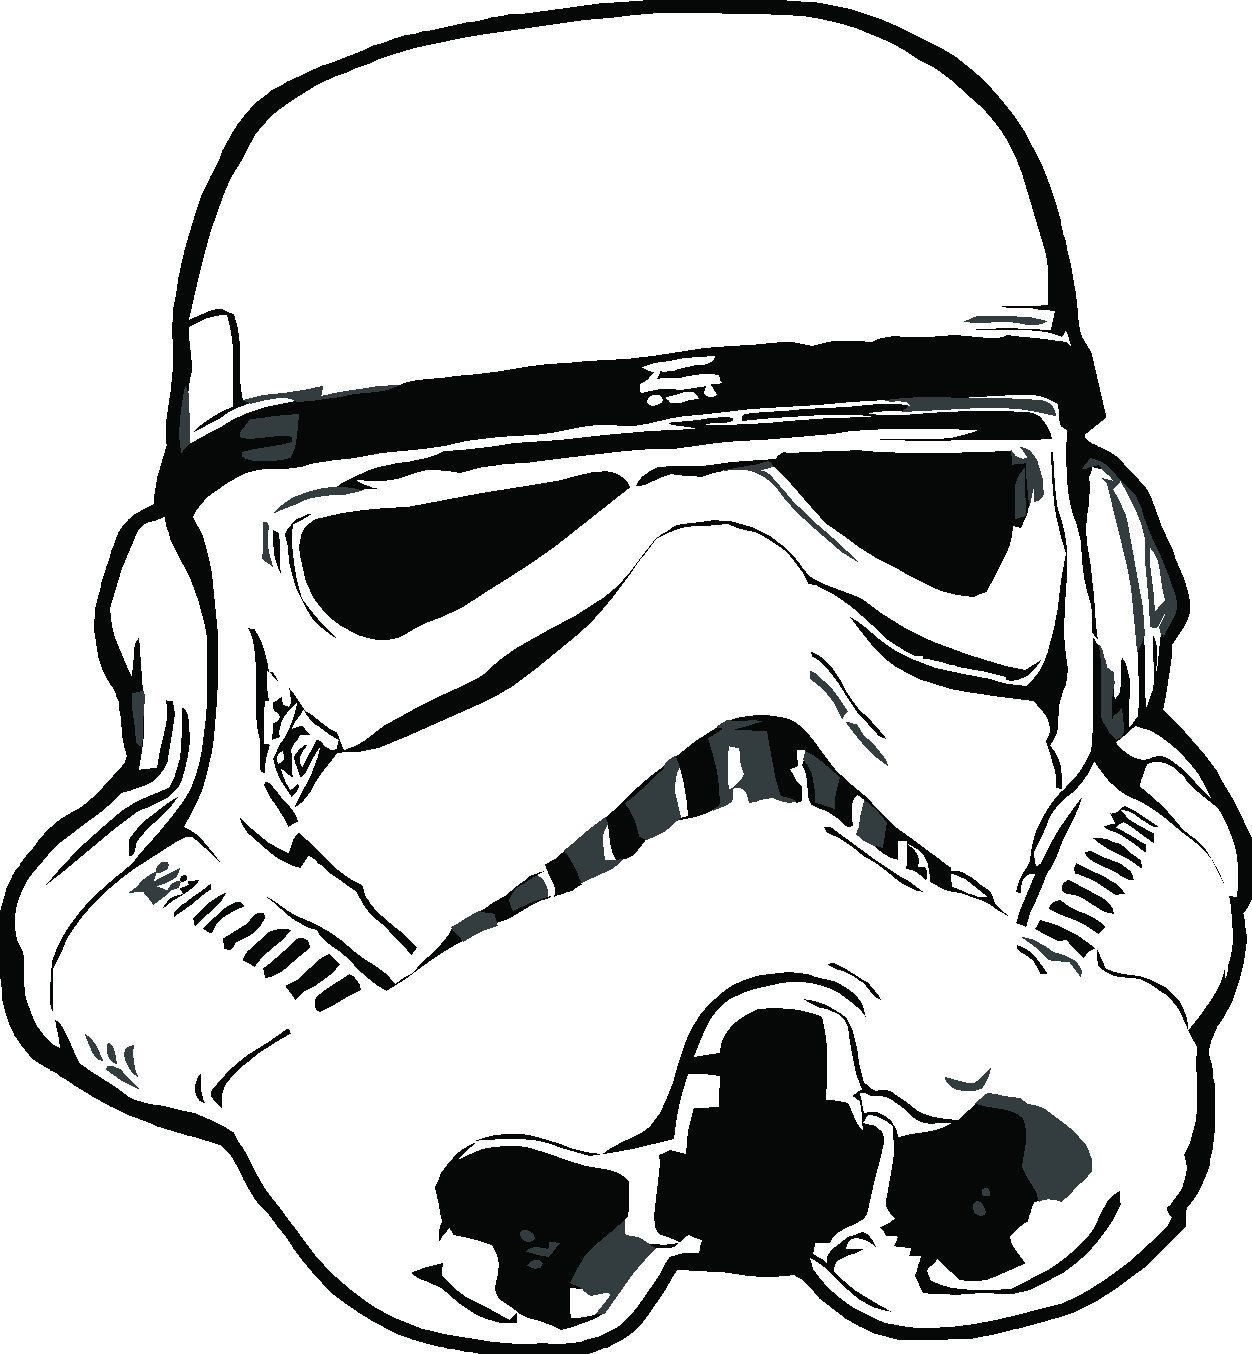 Star Wars Line Art - ClipArt Best